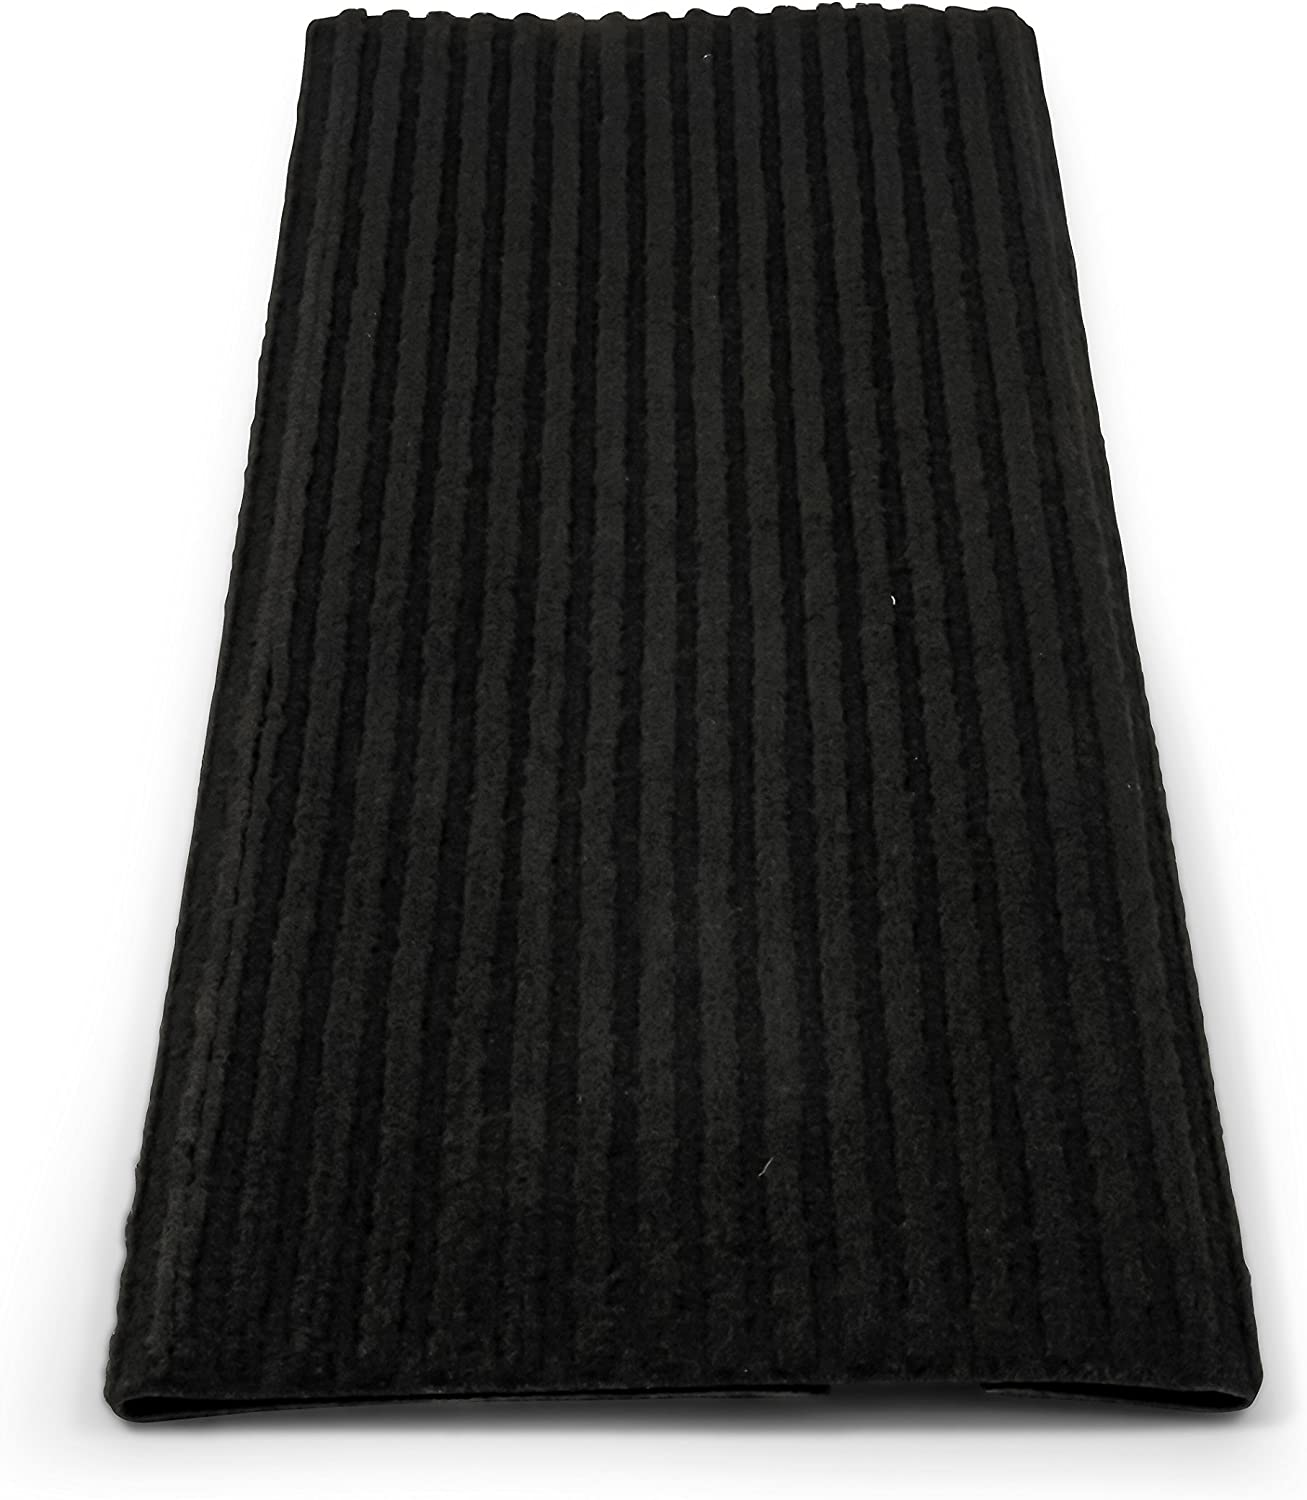 Premium Wrap Around Double Ribbed , 100/% Polyester Camco 42955 RV Step Rug 18 x 23 - Brown